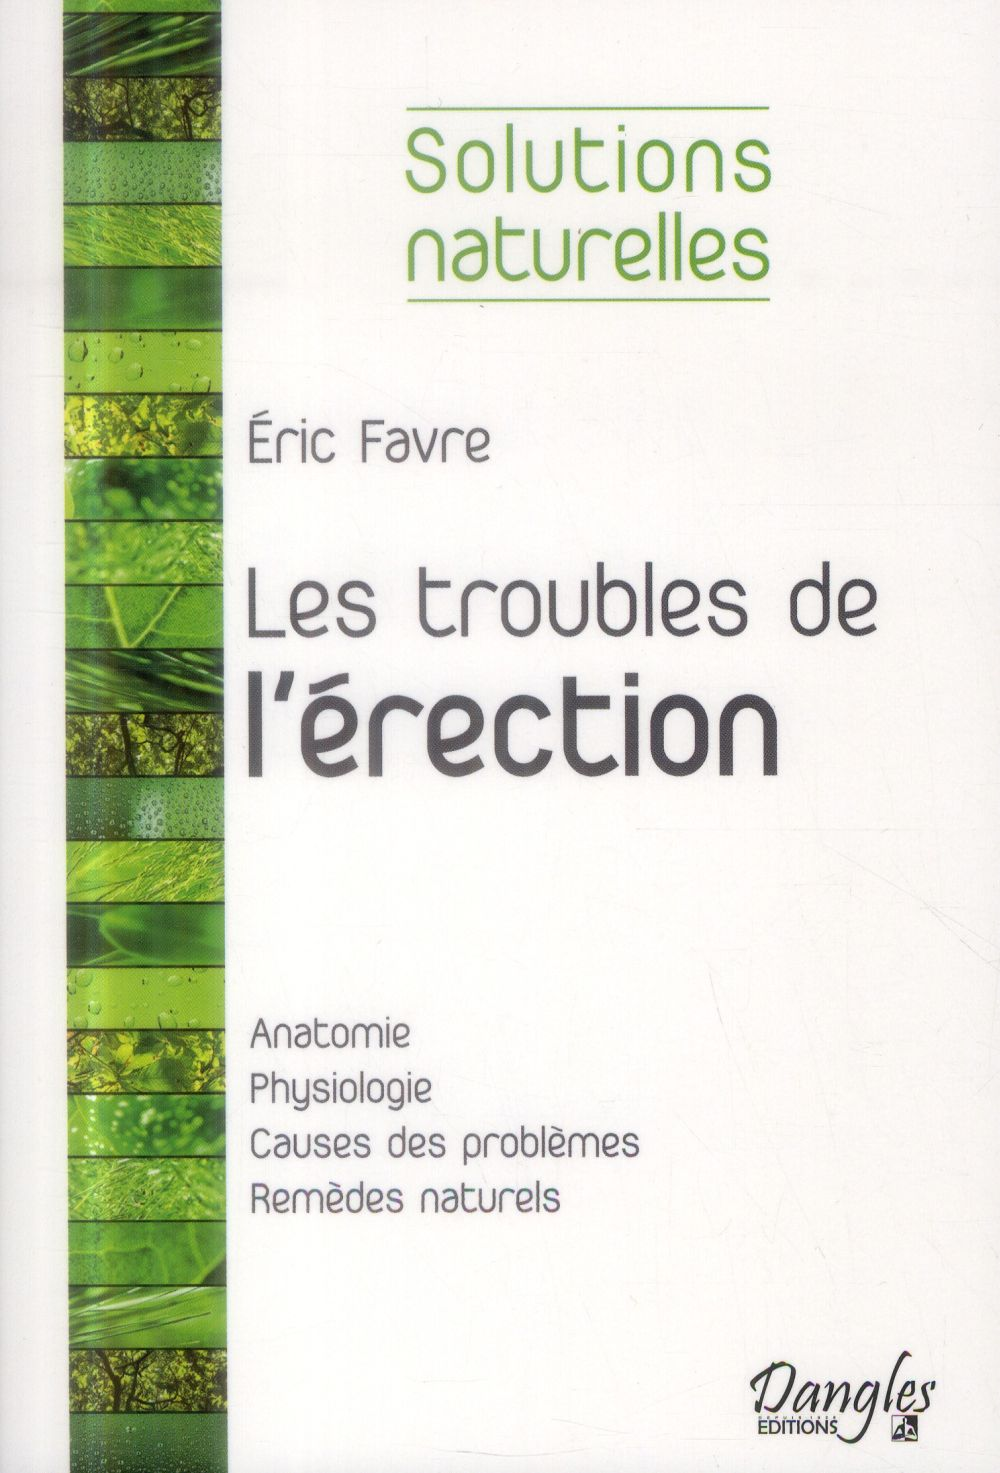 LES TROUBLES DE L'ERECTION